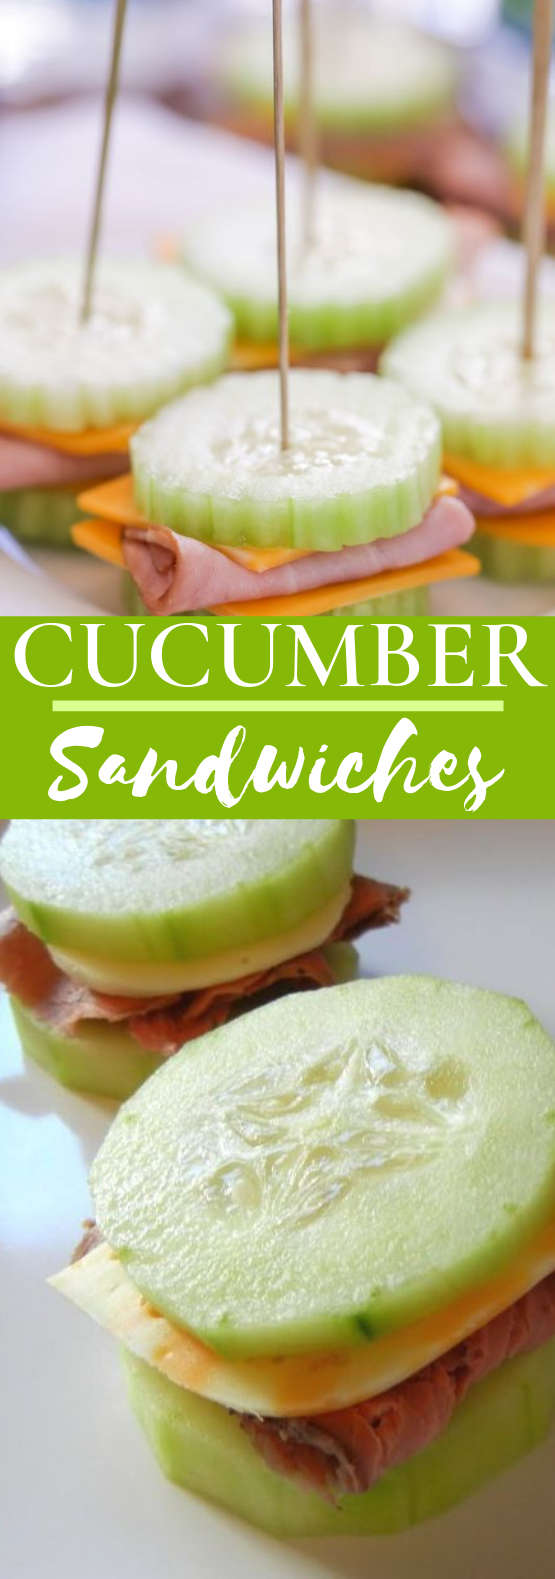 Cucumber Sandwiches #appetizers #keto